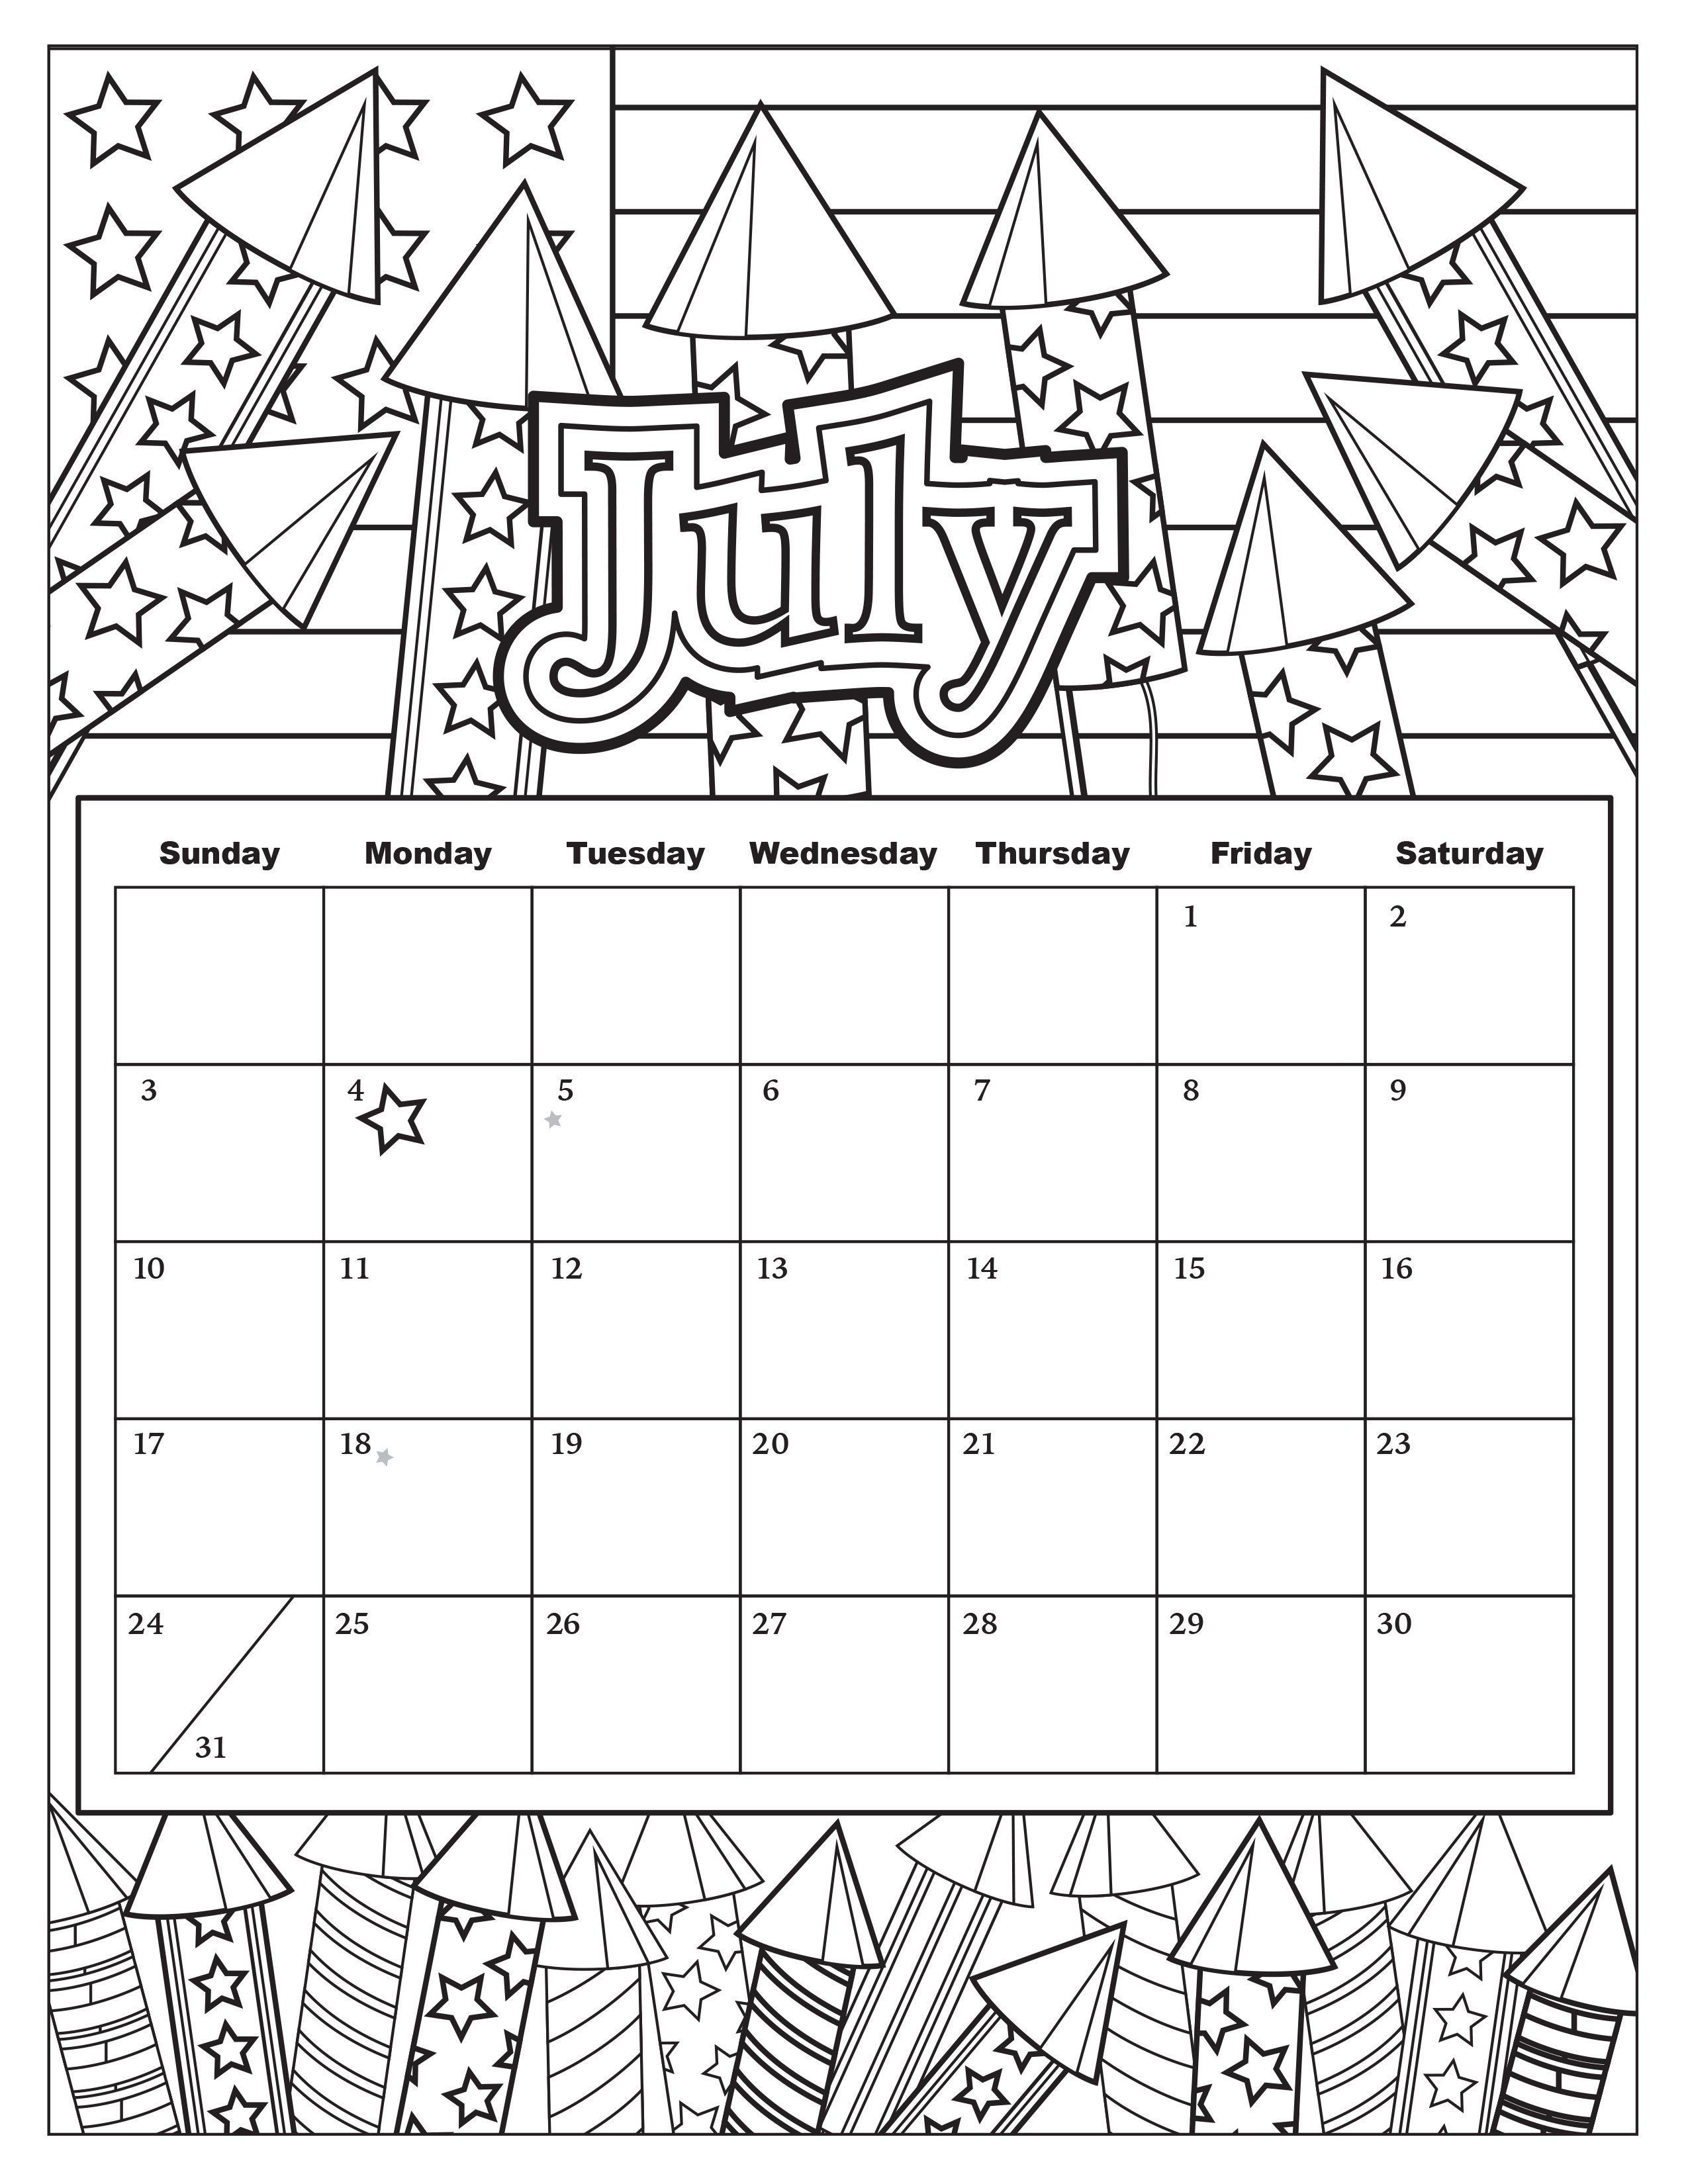 Coloring Book Calendars  Free Download Coloring Pages from Popular Adult Coloring